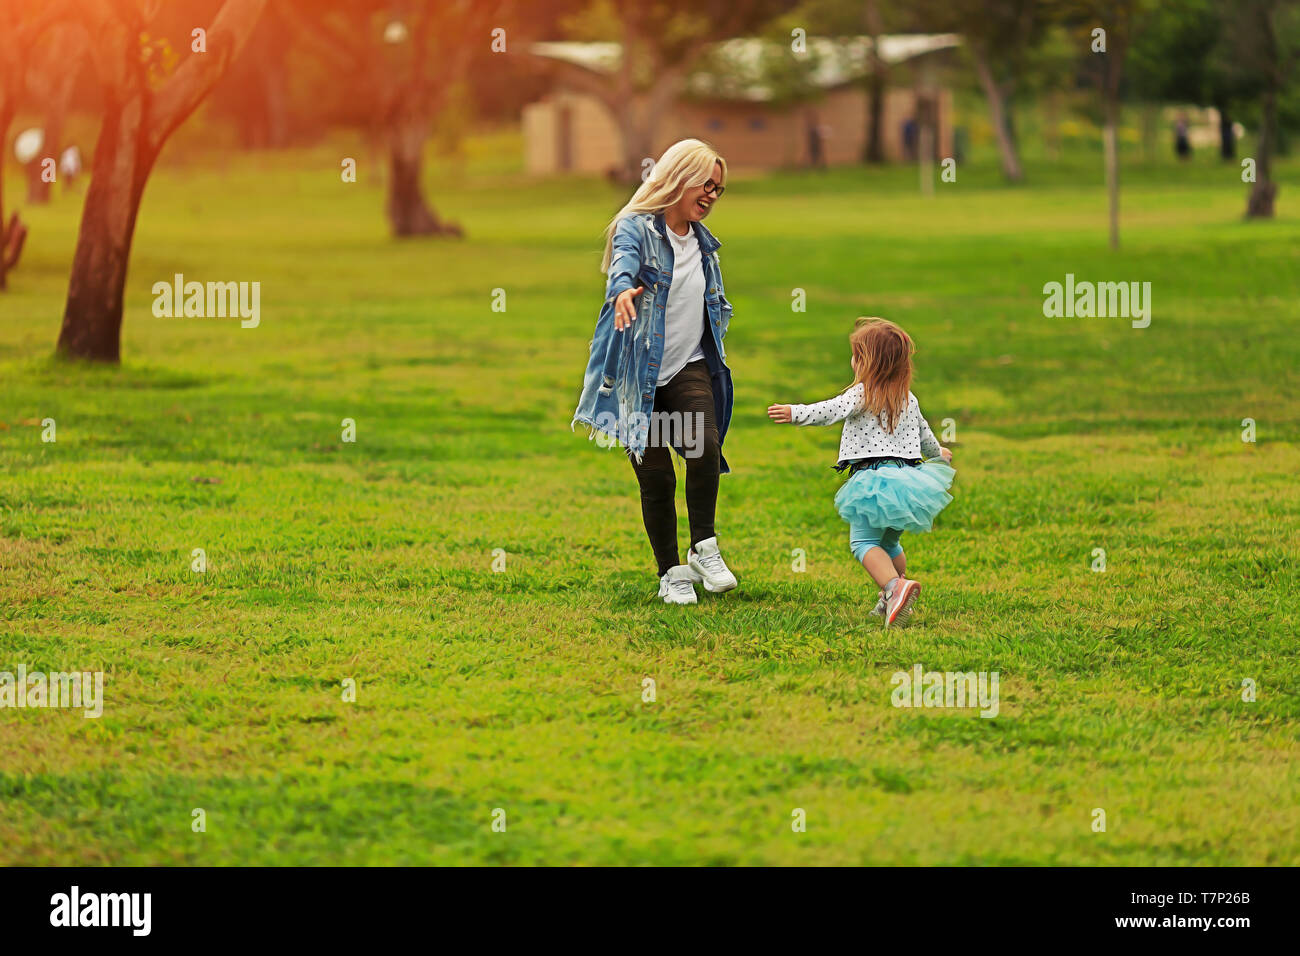 Toddler girl running to her mother in the park - Stock Image